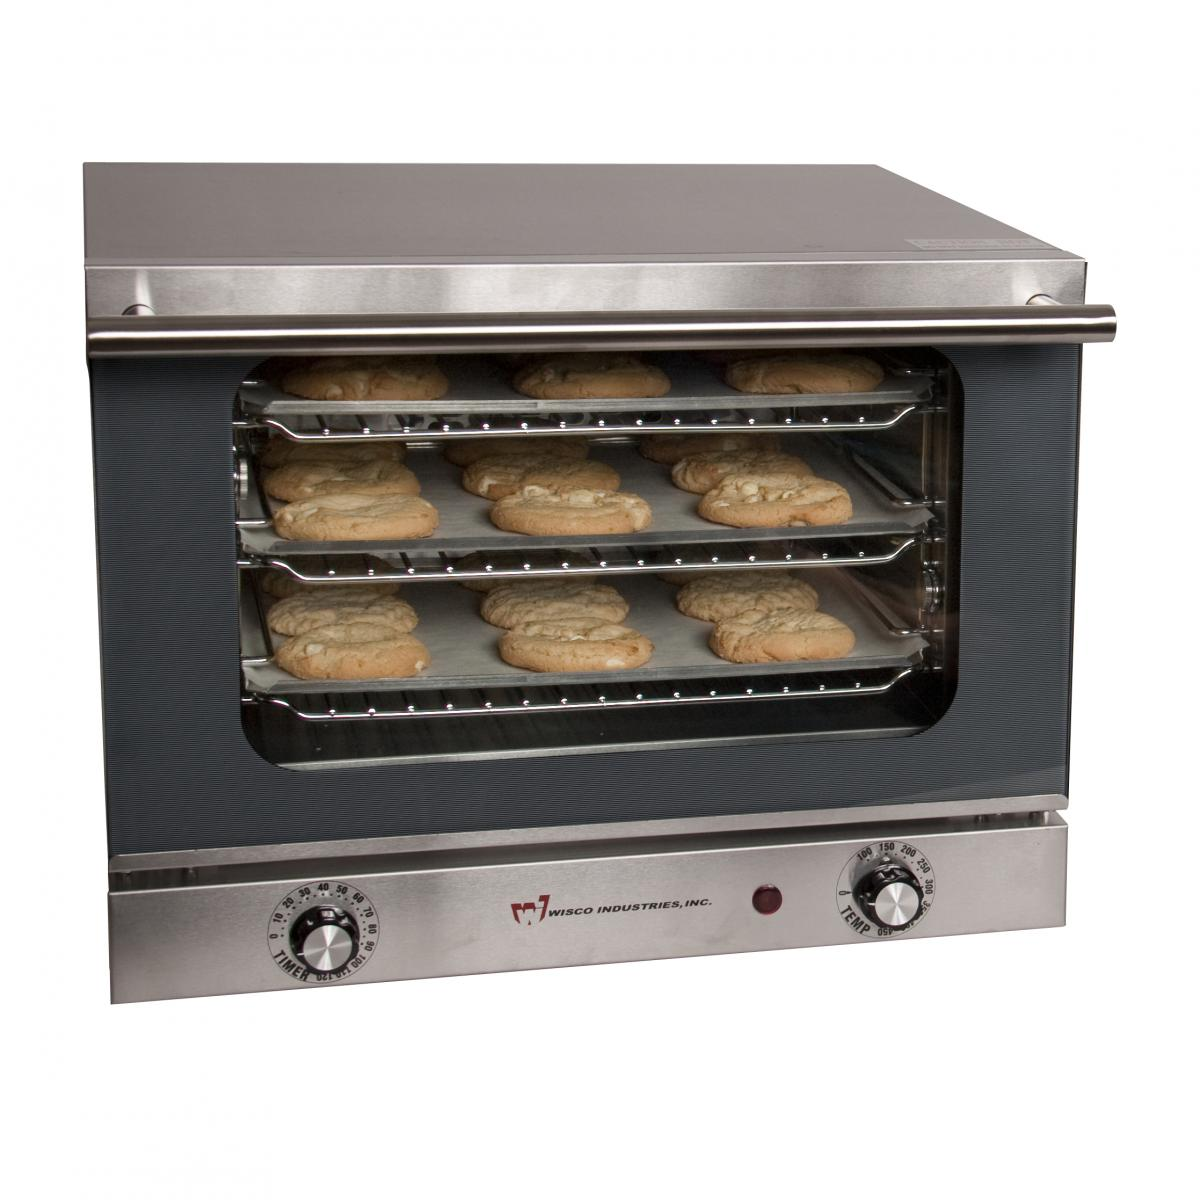 wisco 620 analog convection oven foodpros. Black Bedroom Furniture Sets. Home Design Ideas